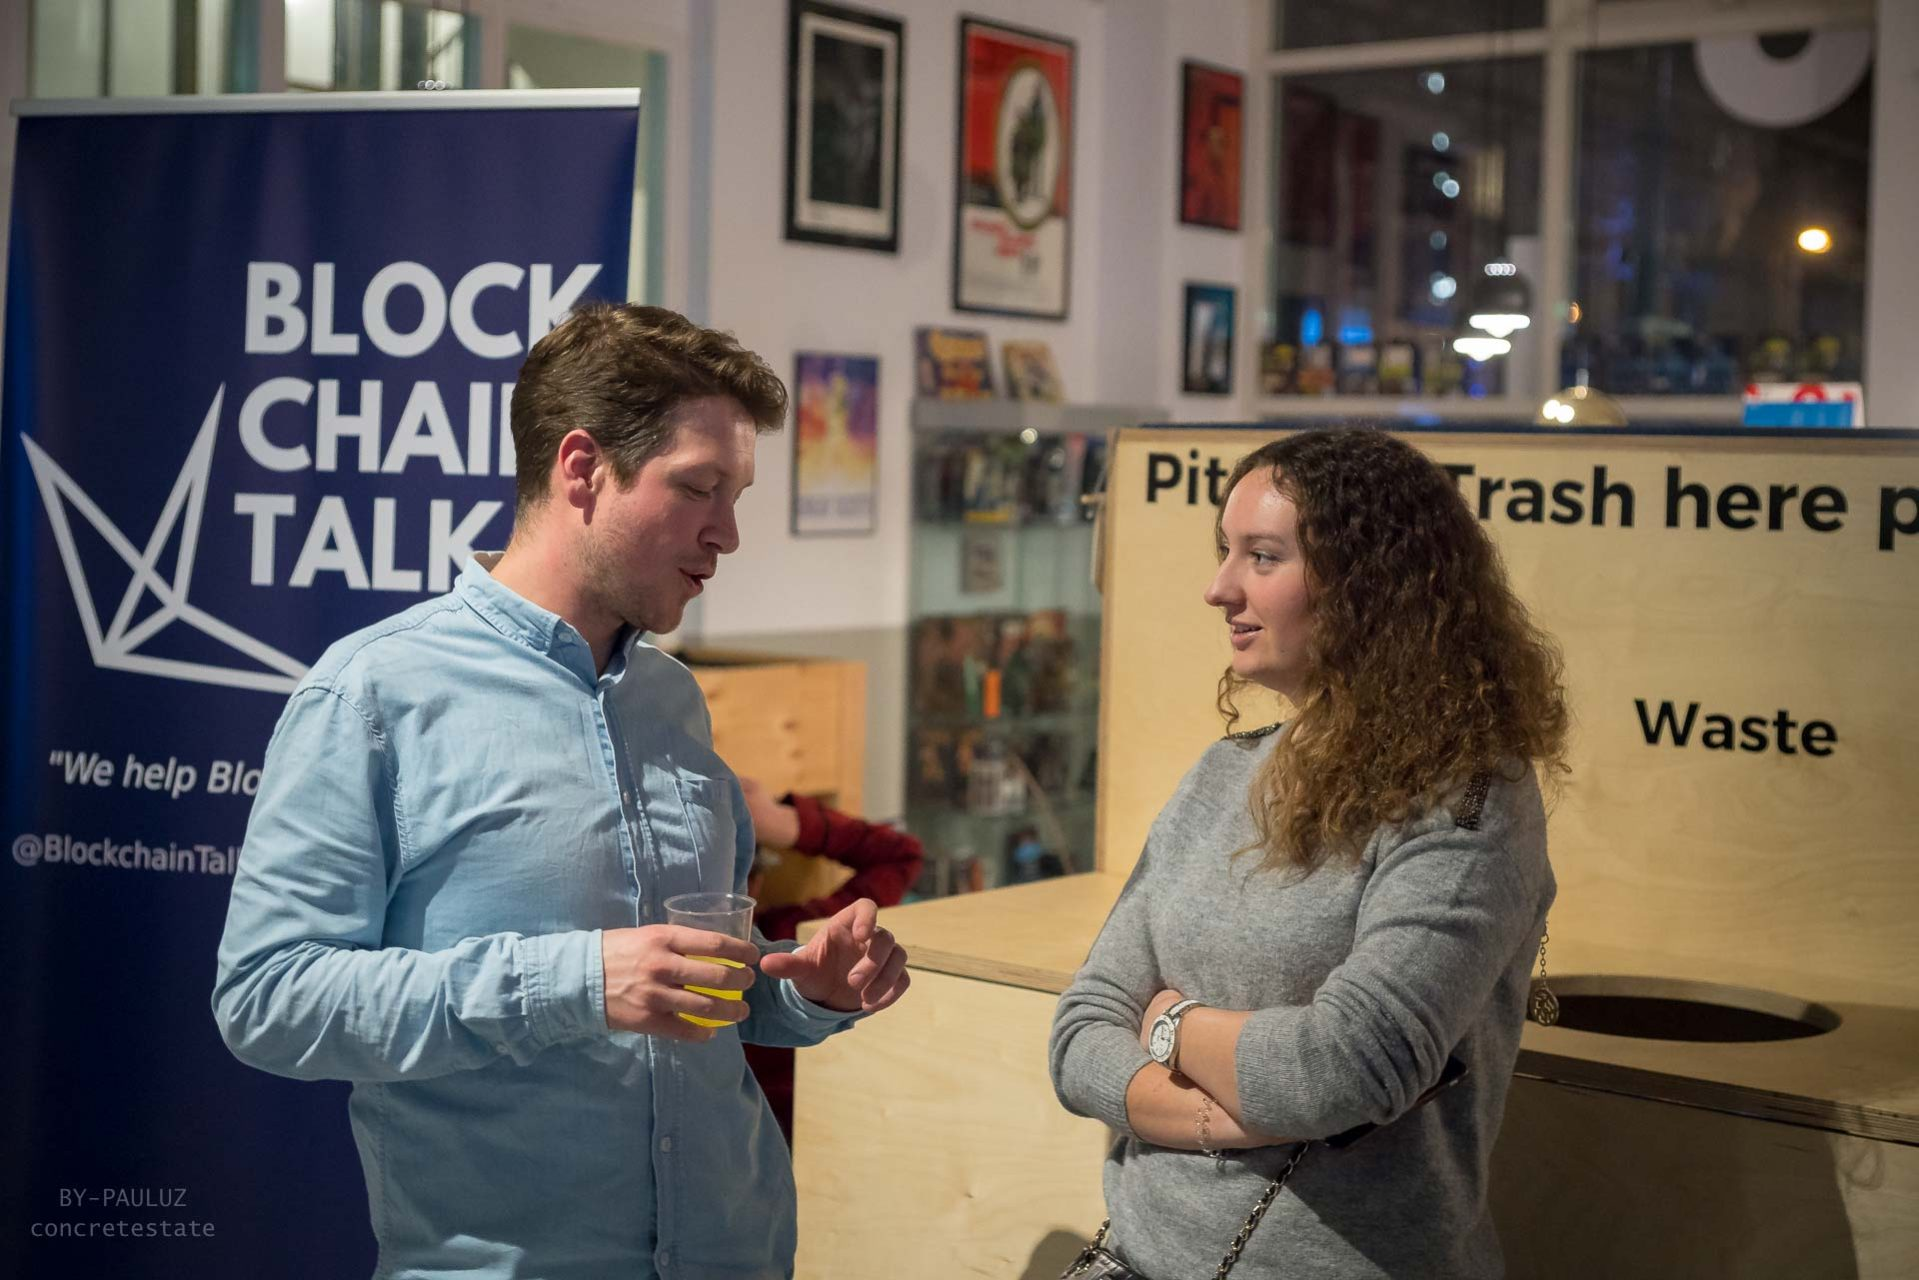 Blockchain-talks-42-workspace (15 van 22)